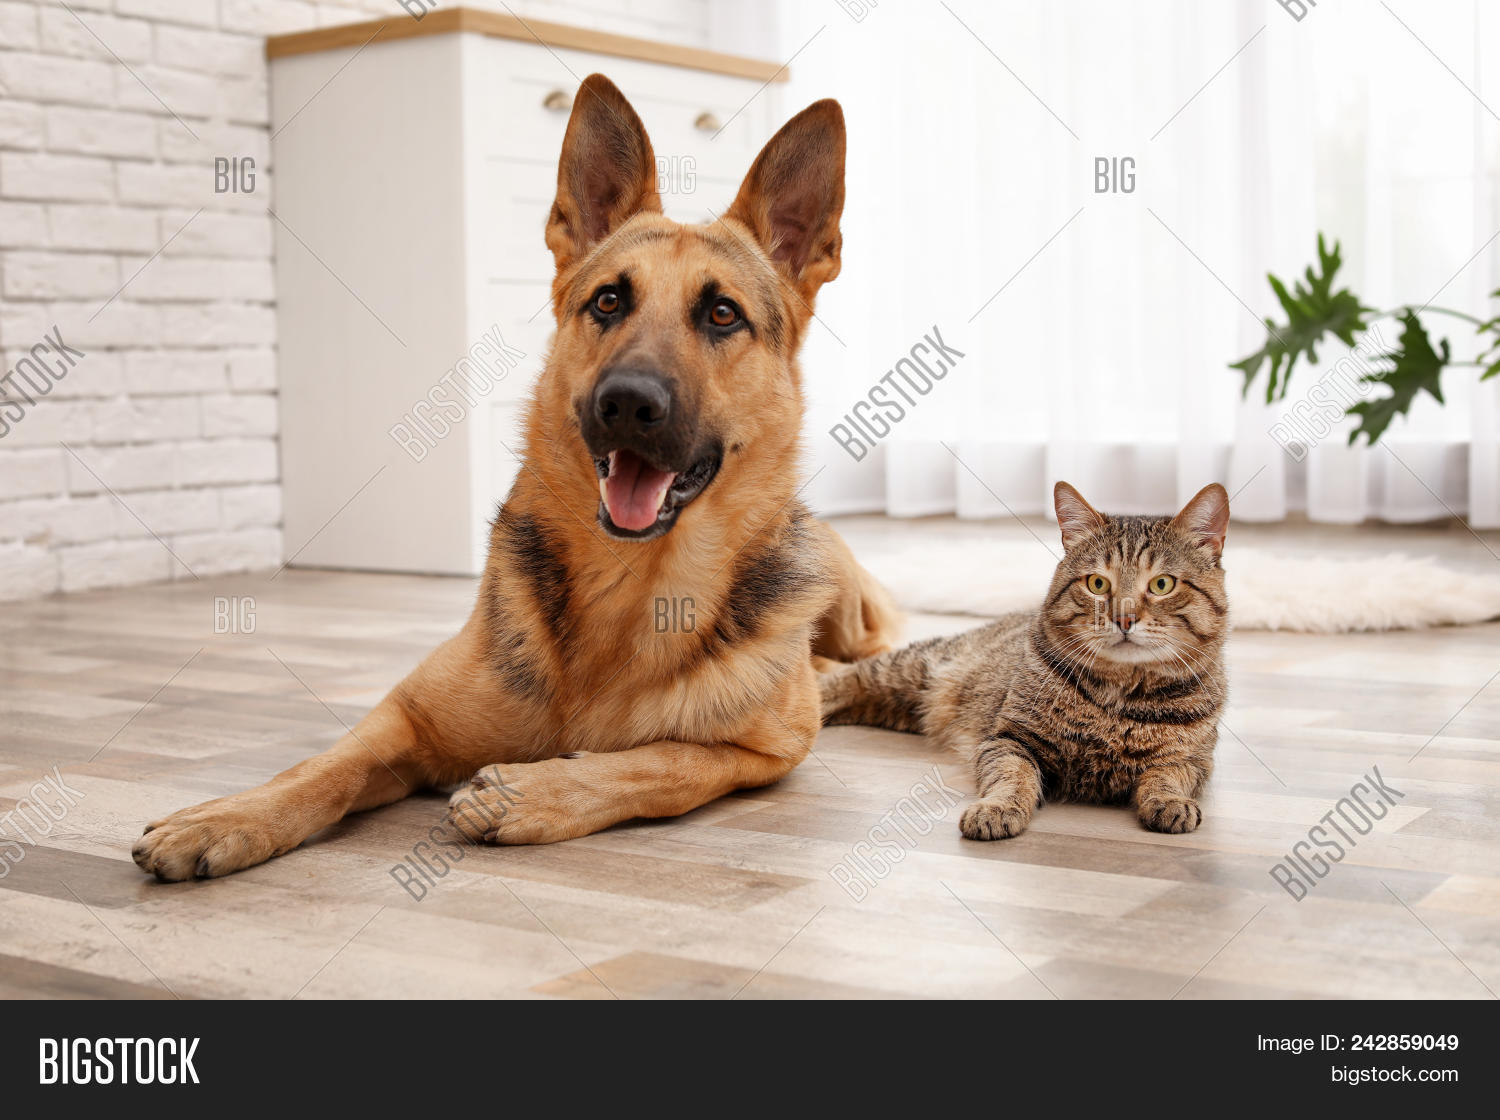 Adorable Cat And Dog Resting Together At Home Animal Friendship 242859049 Image Stock Photo